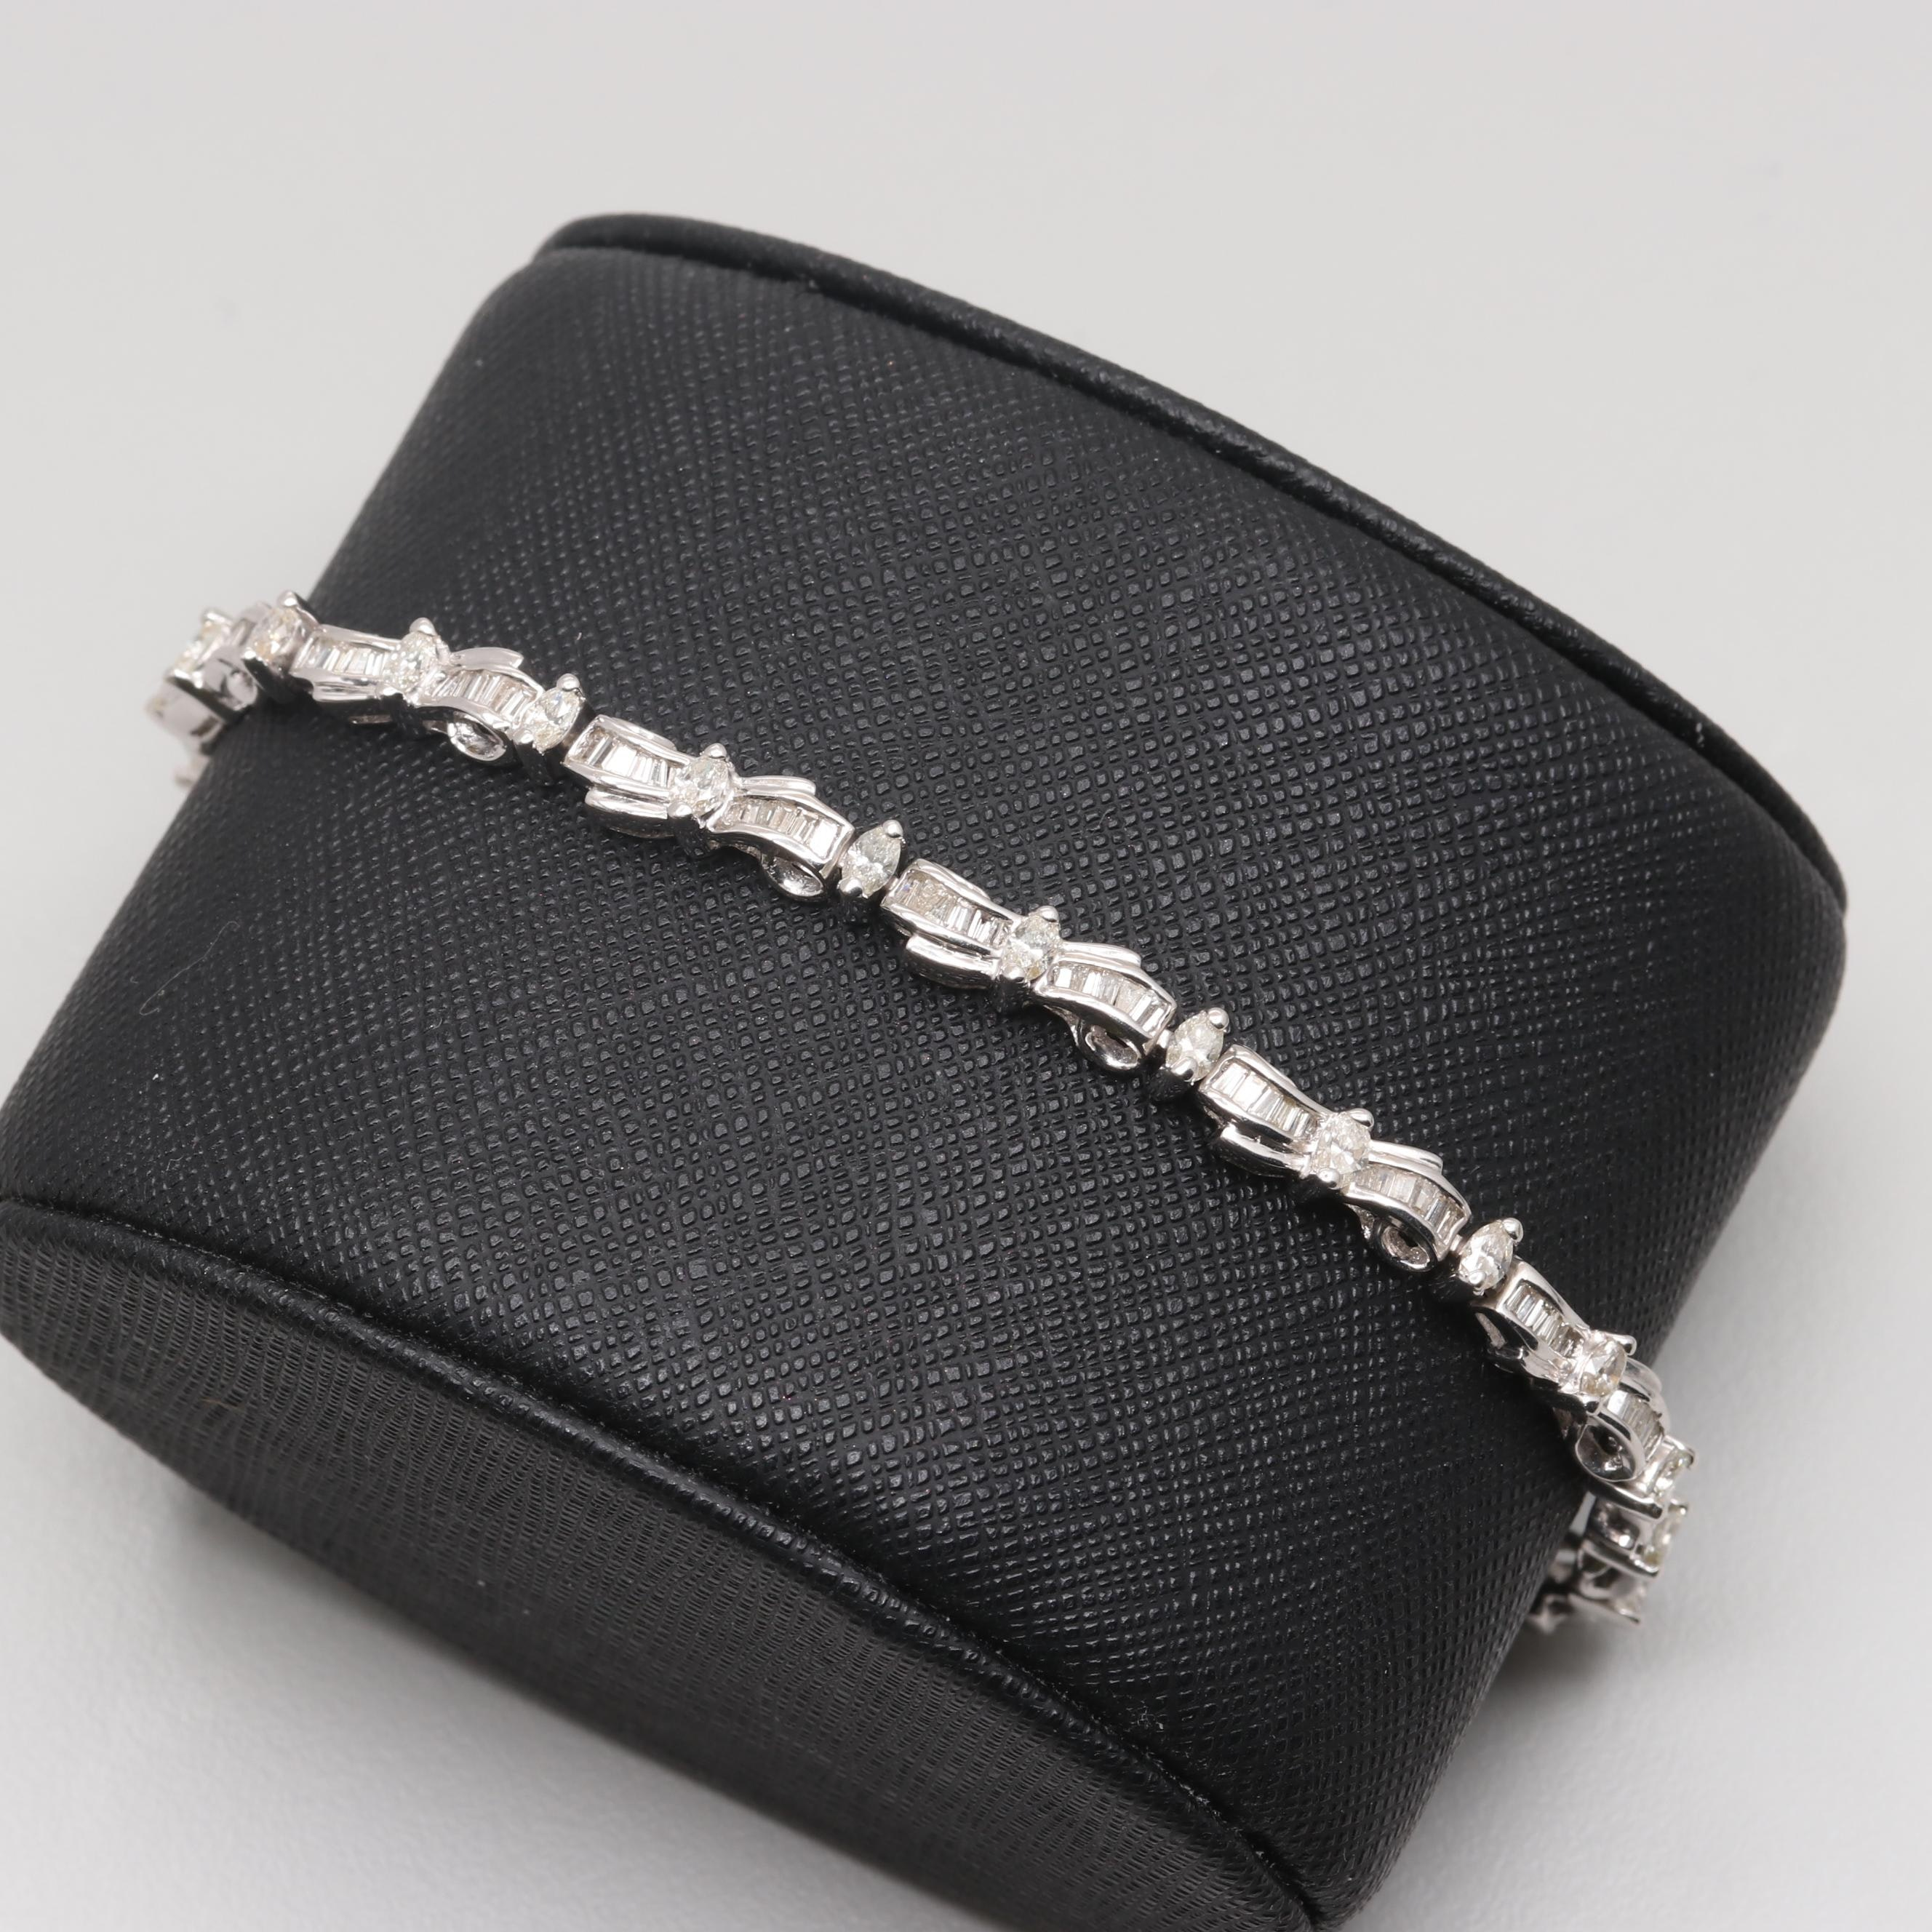 18K White Gold 2.96 CTW Diamond Bracelet